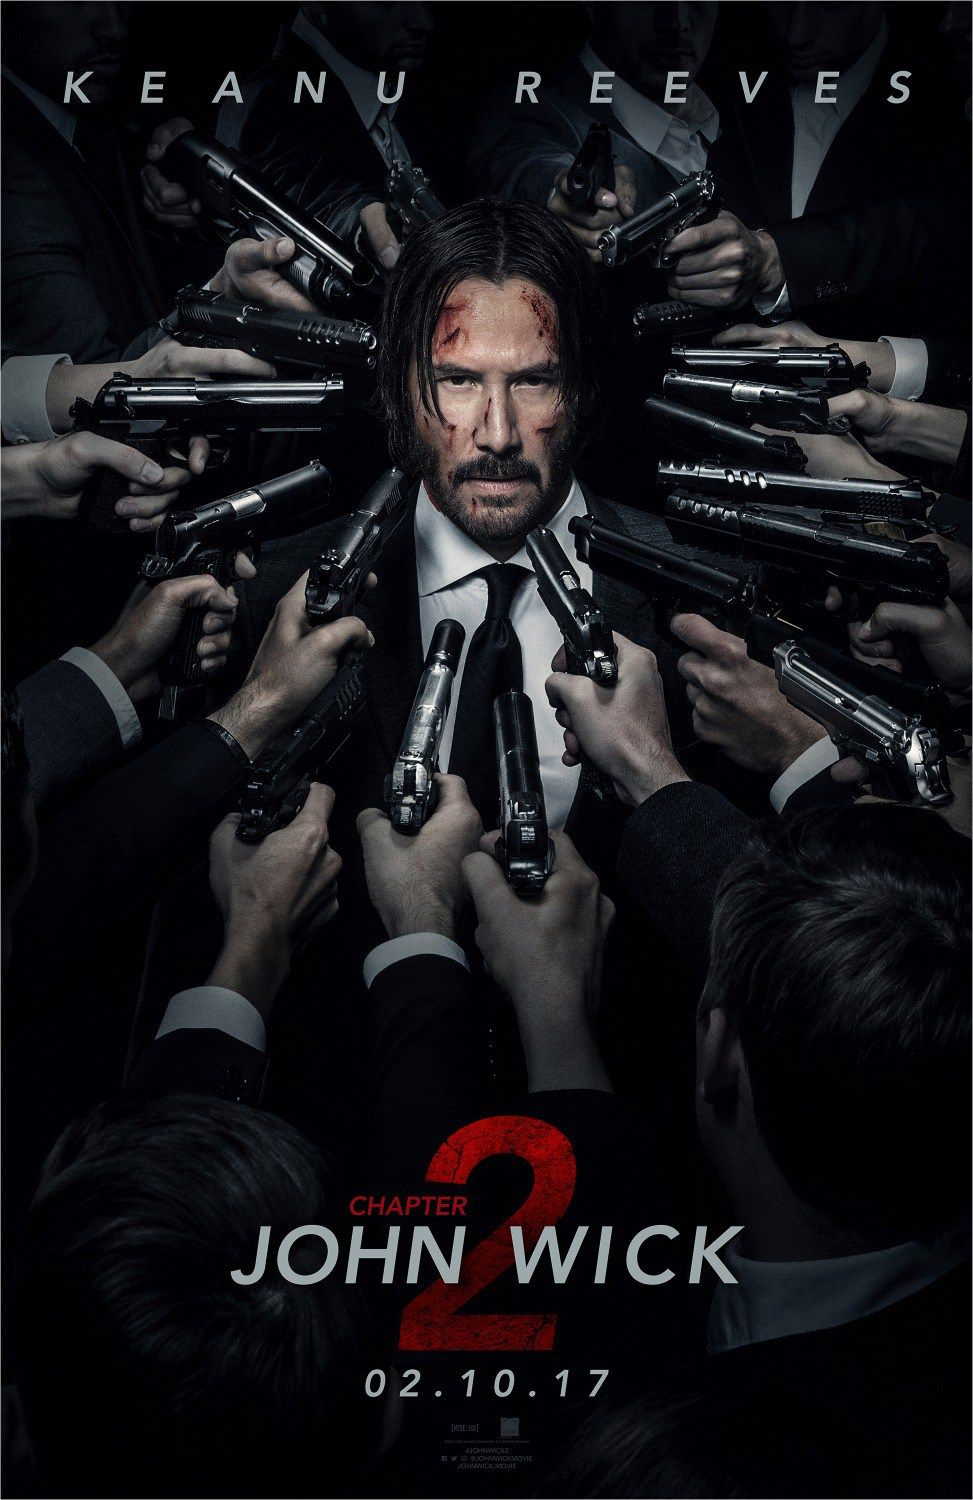 John Wick Chapter 2 Poster 2 India Release John Wick 2 Movie Watch John Wick Free Movies Online